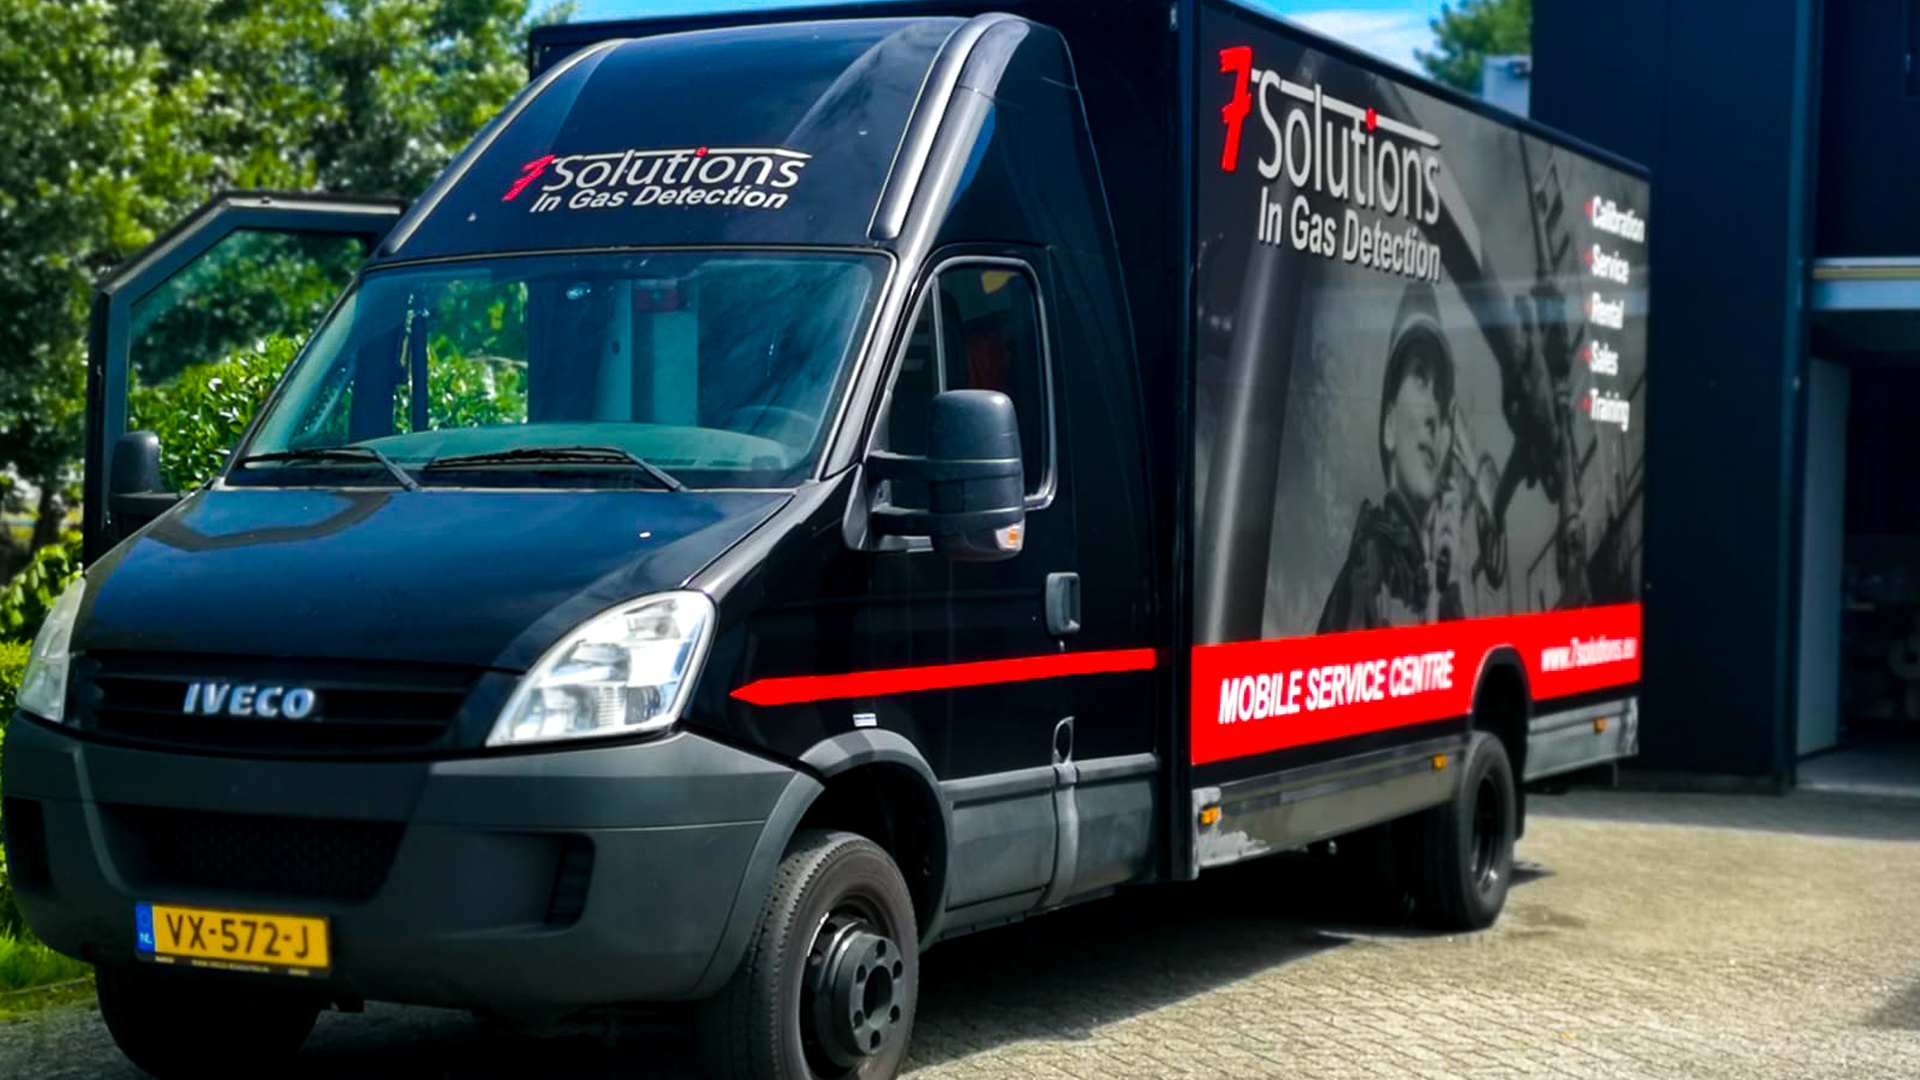 Fully_Equipped_Service_Truck 7solutions - Service & Kalibratie